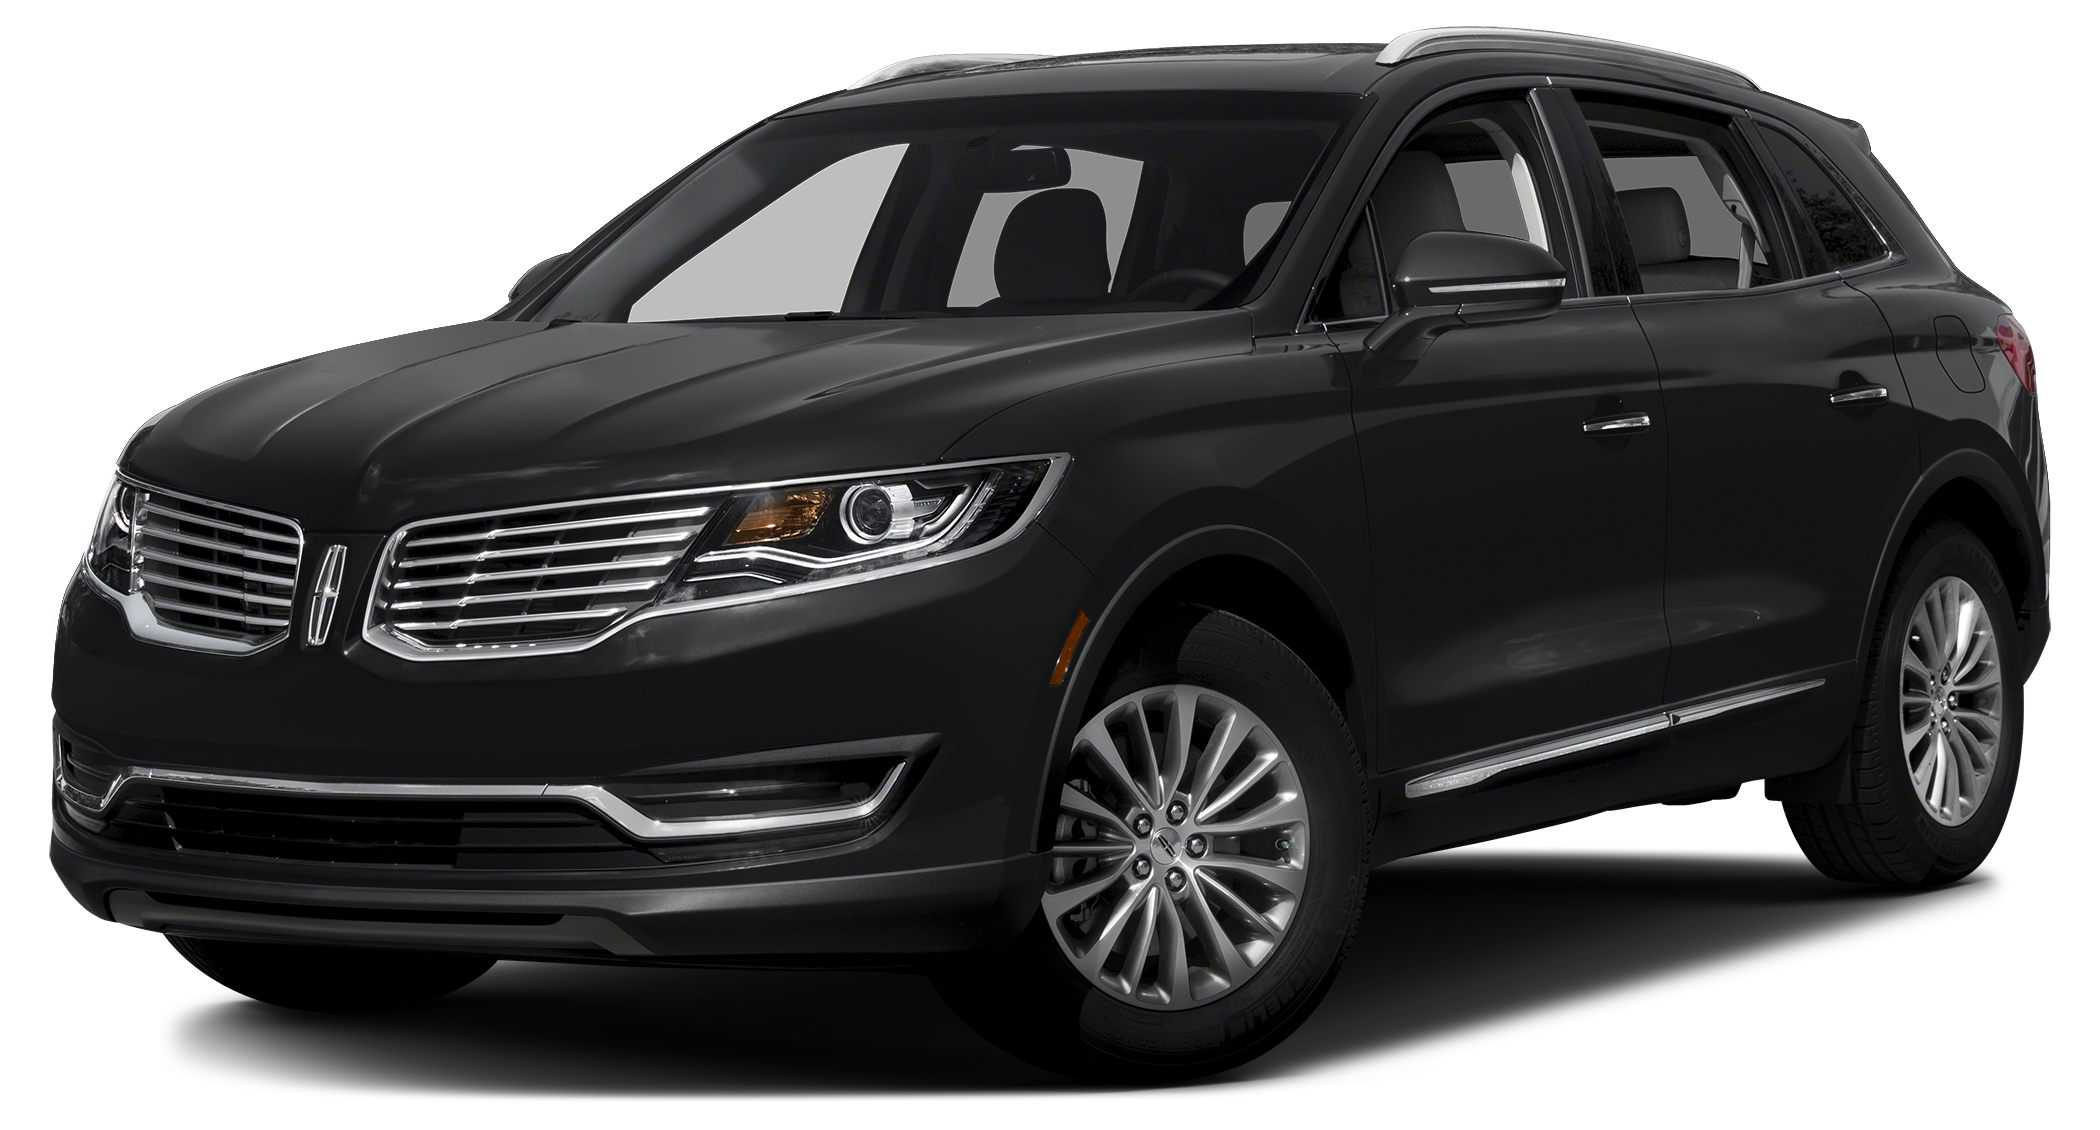 2017 lincoln mkx for sale in houston tx 2lmpj6lr0hbl53082. Black Bedroom Furniture Sets. Home Design Ideas